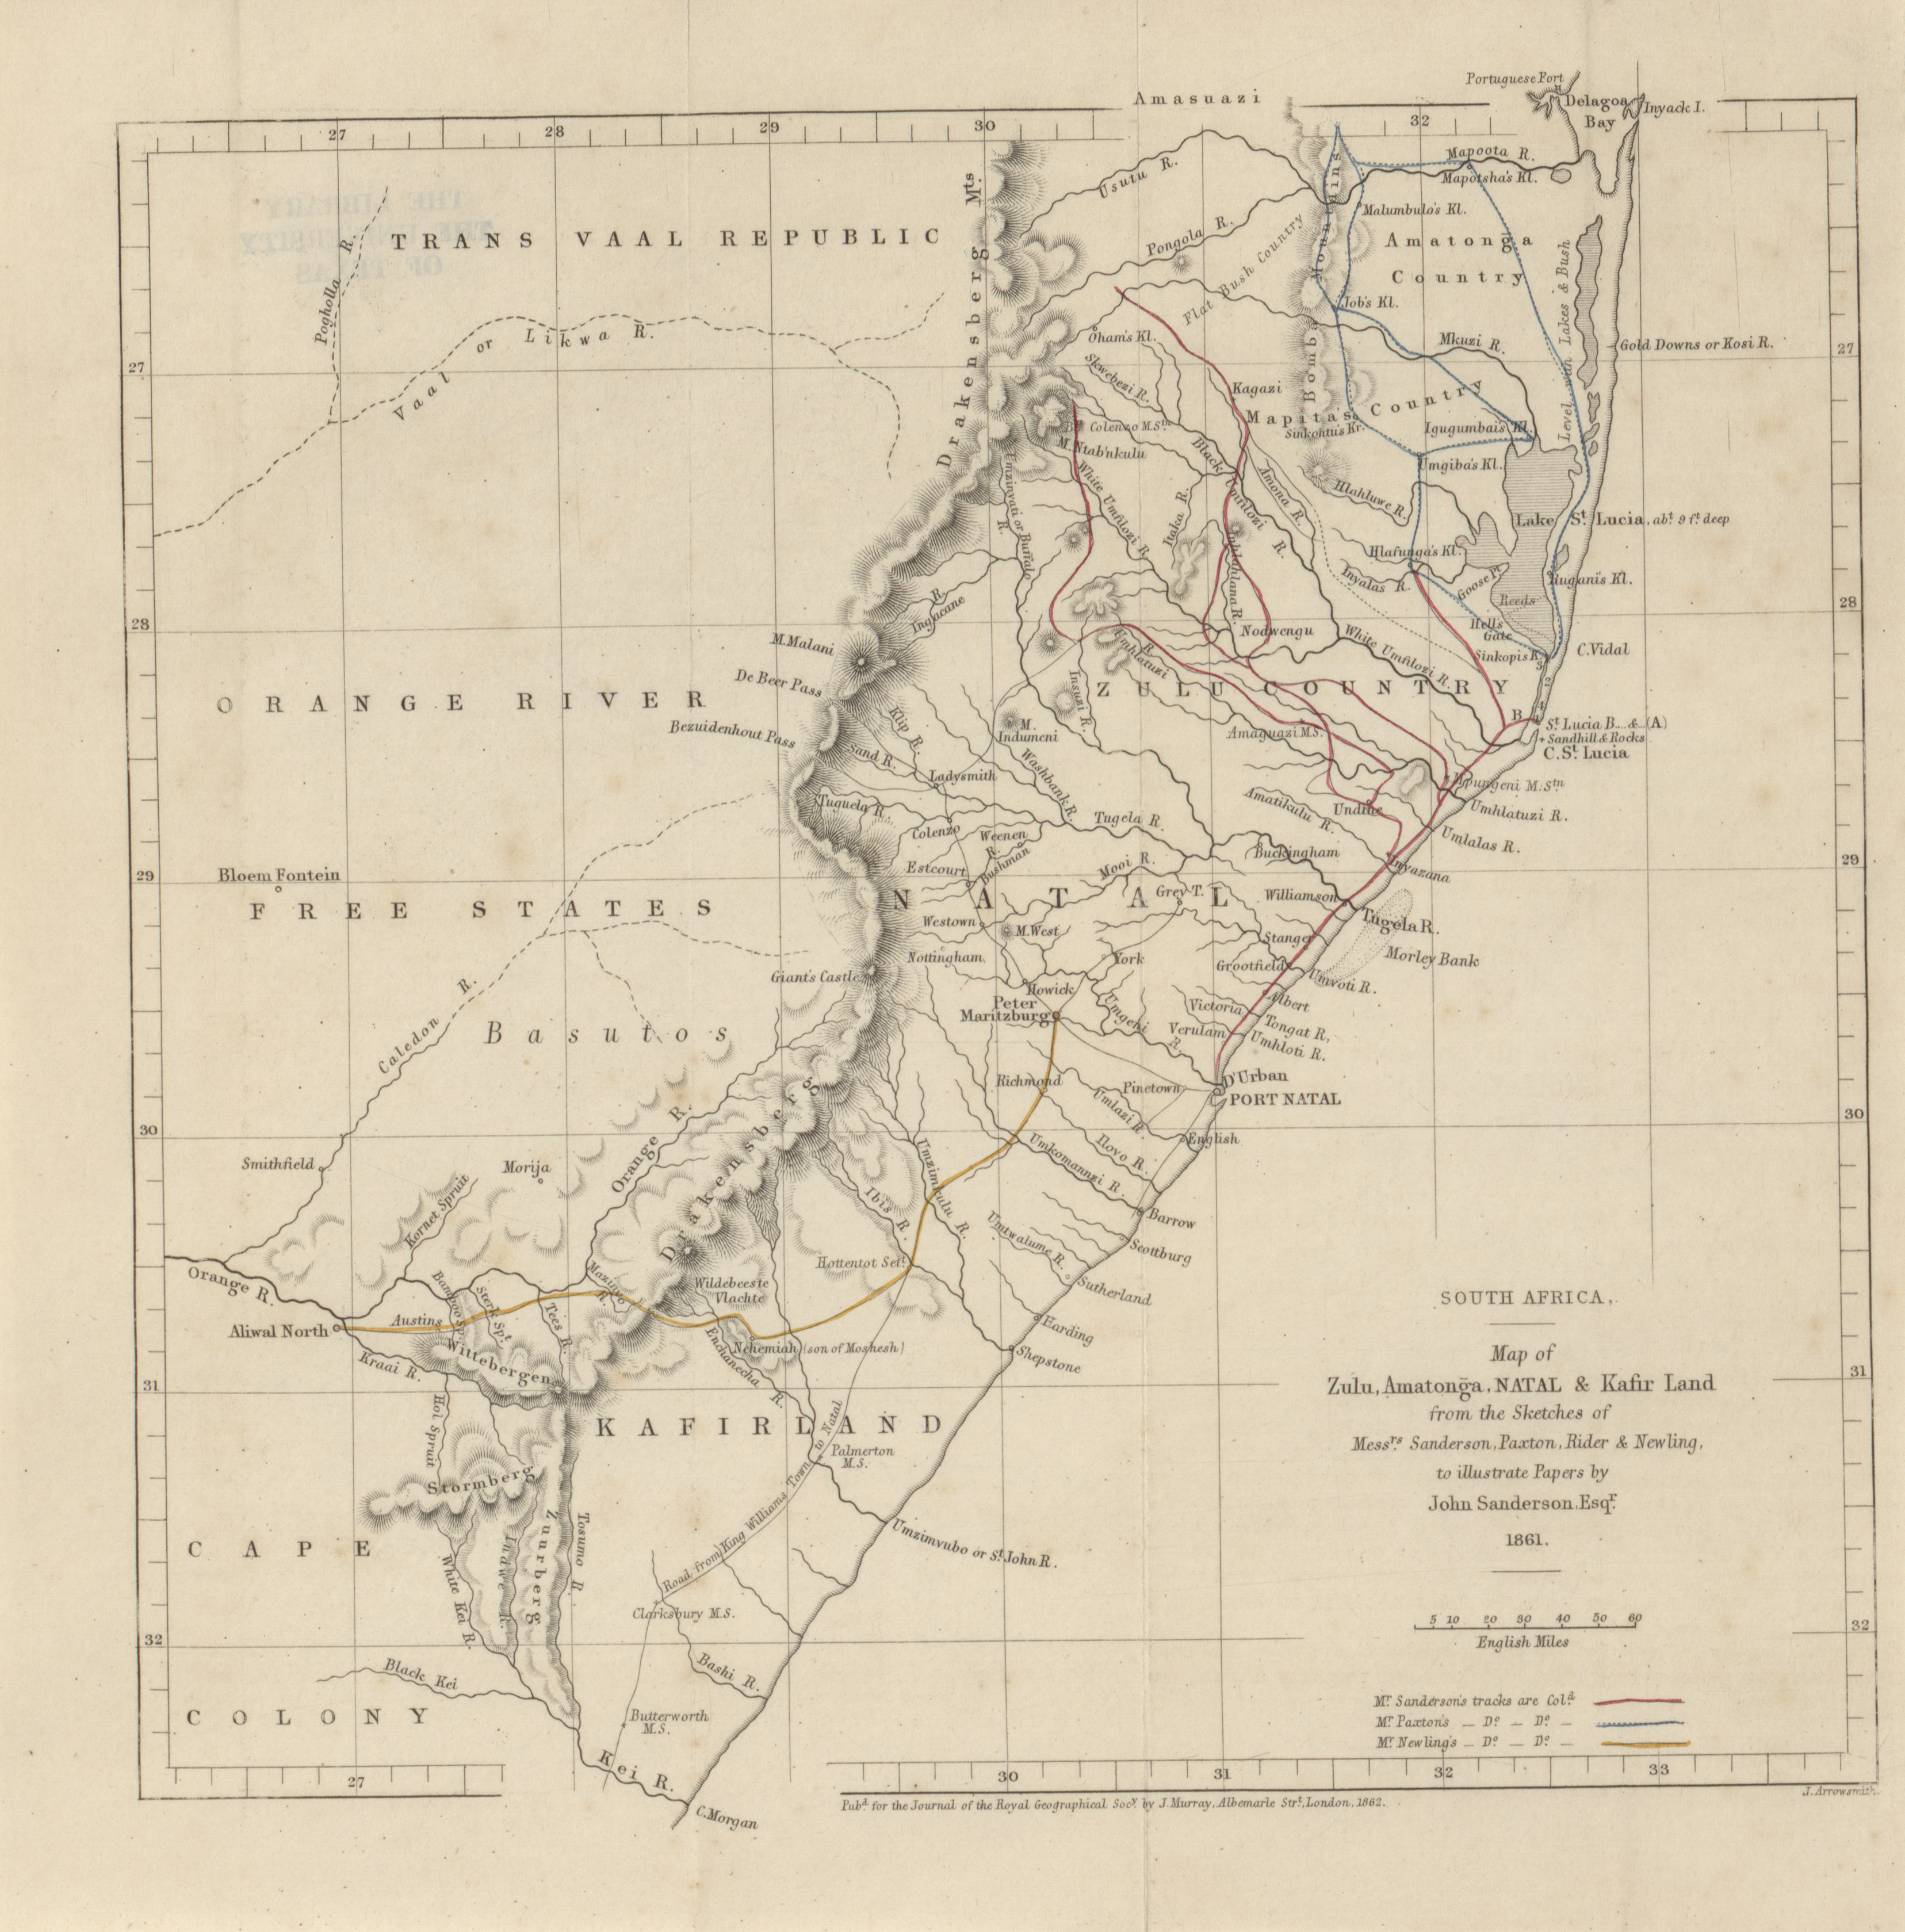 south africa map of zulu amatonga natal and kafir land from the sketches of messrs sanderson paxton rider and newling john sanderson